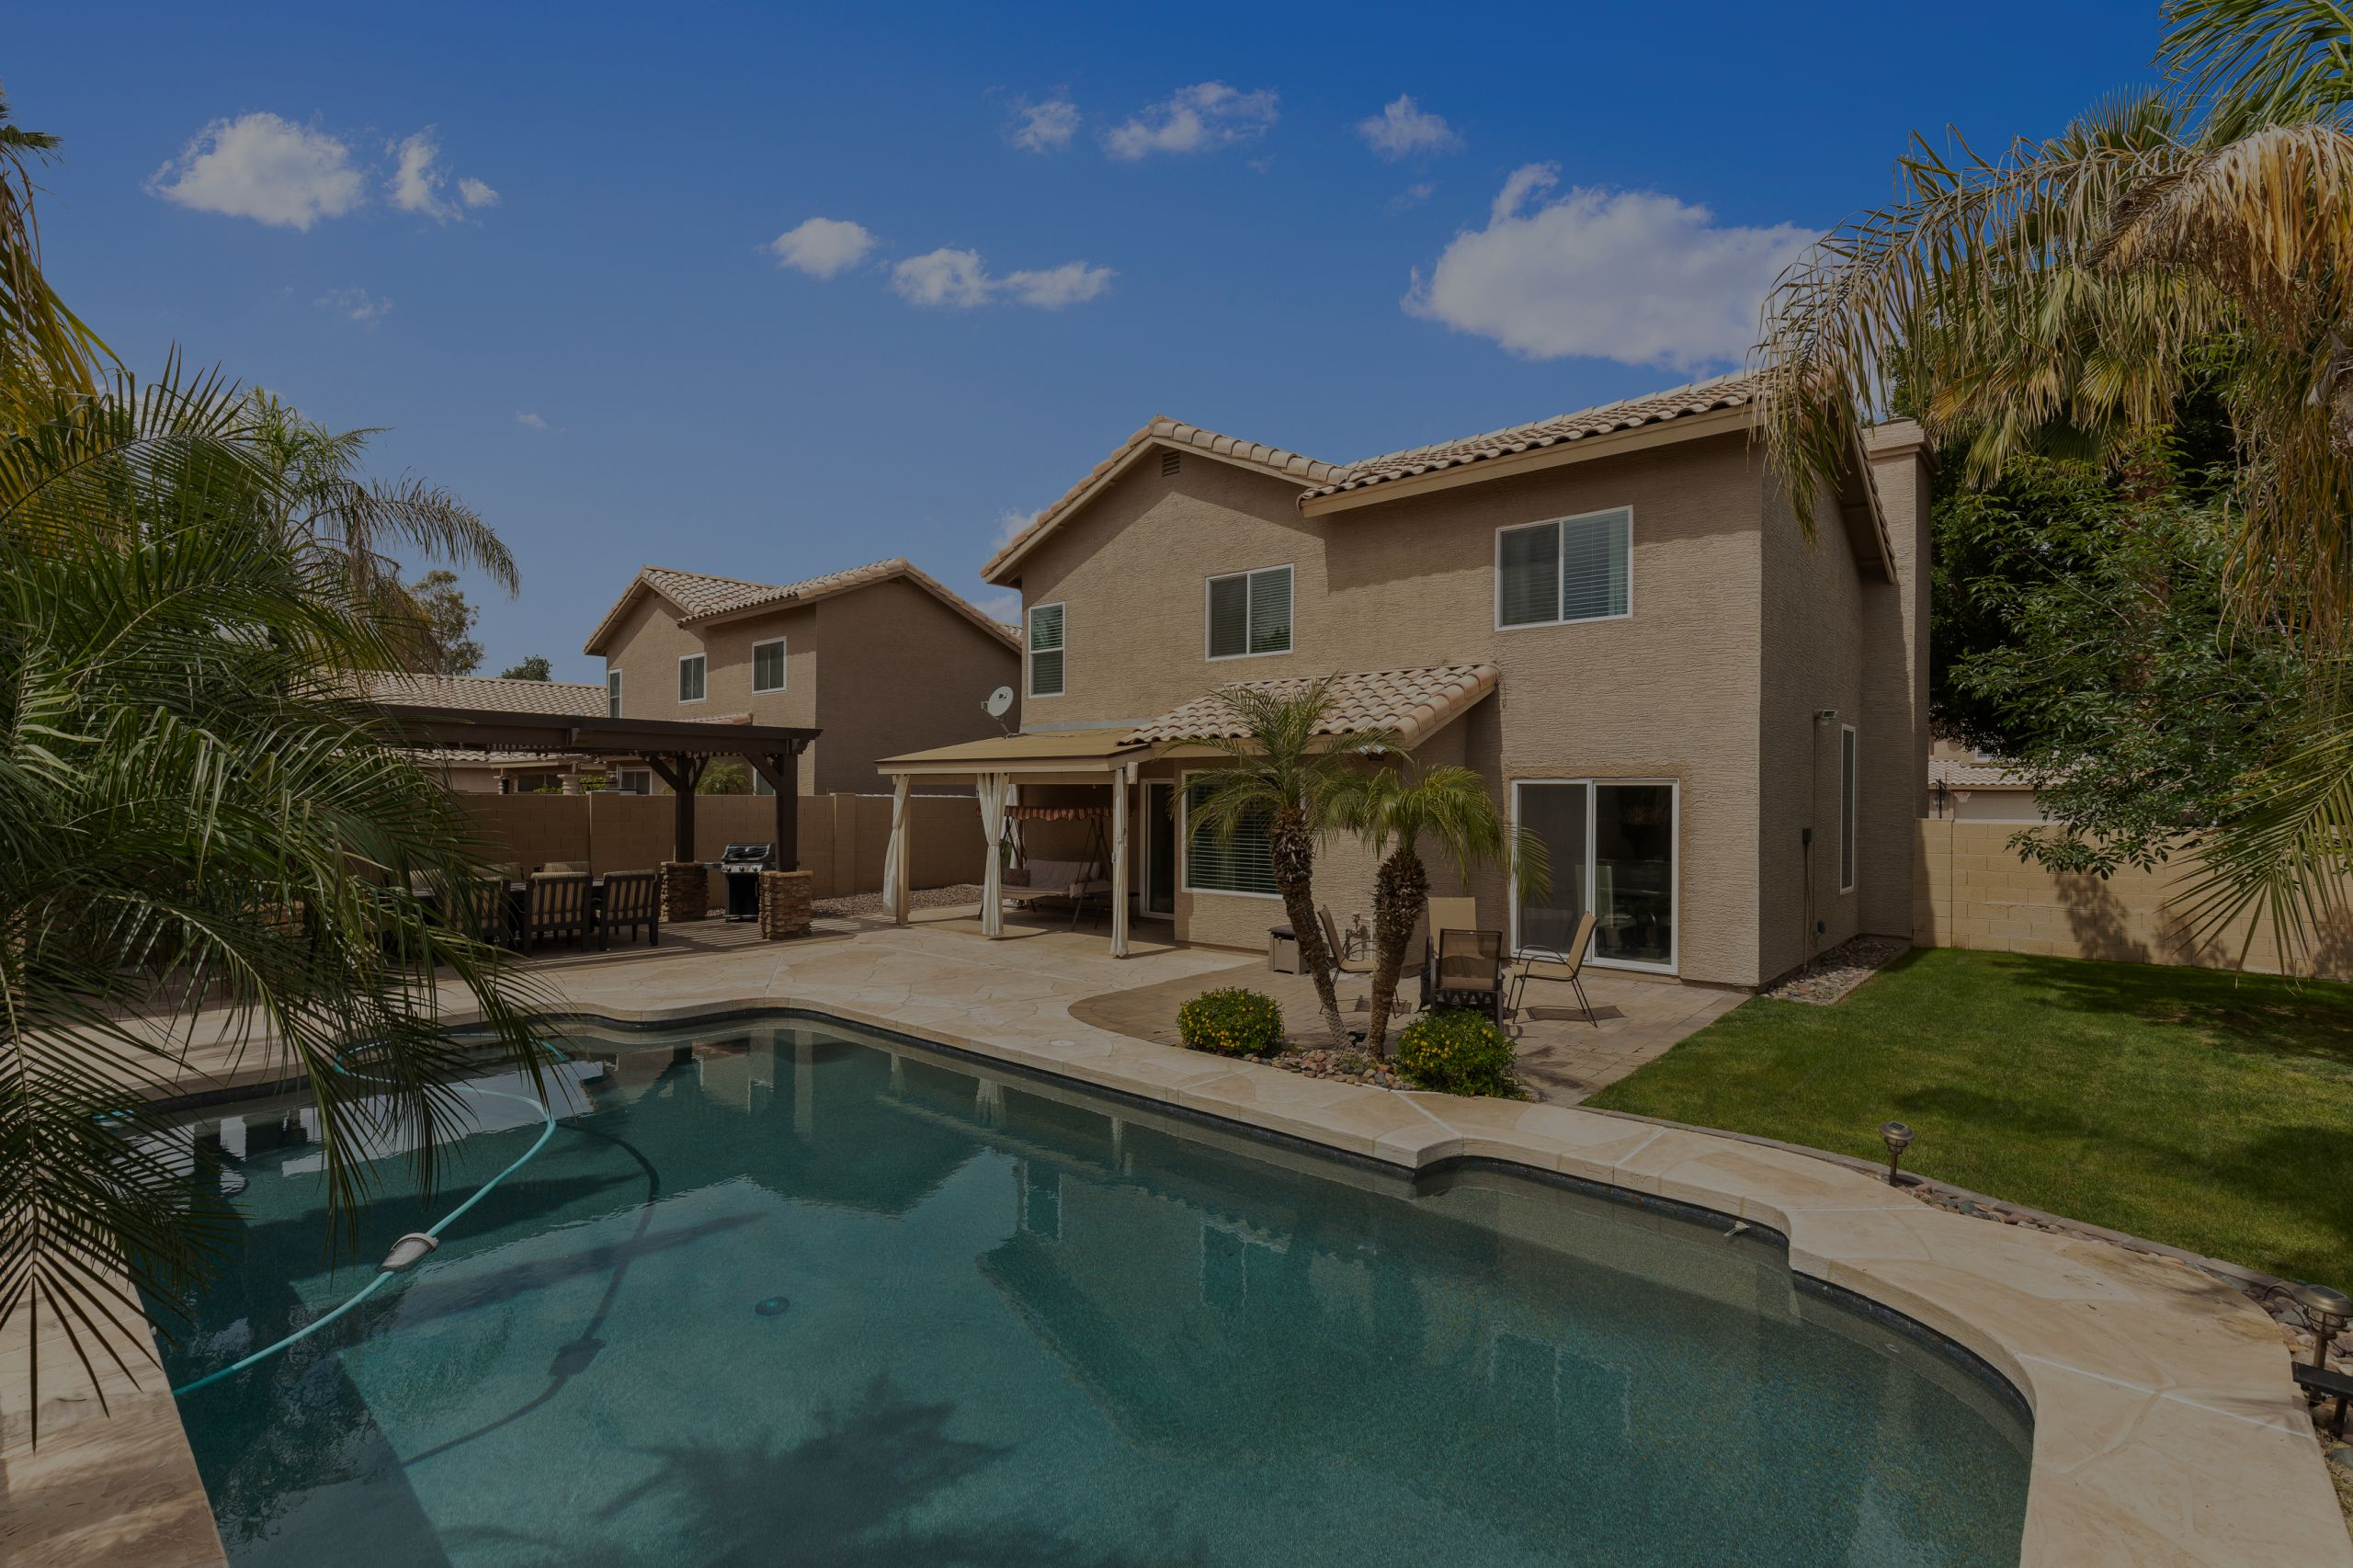 SOLD! Beautiful Phoenix Home with Backyard Oasis